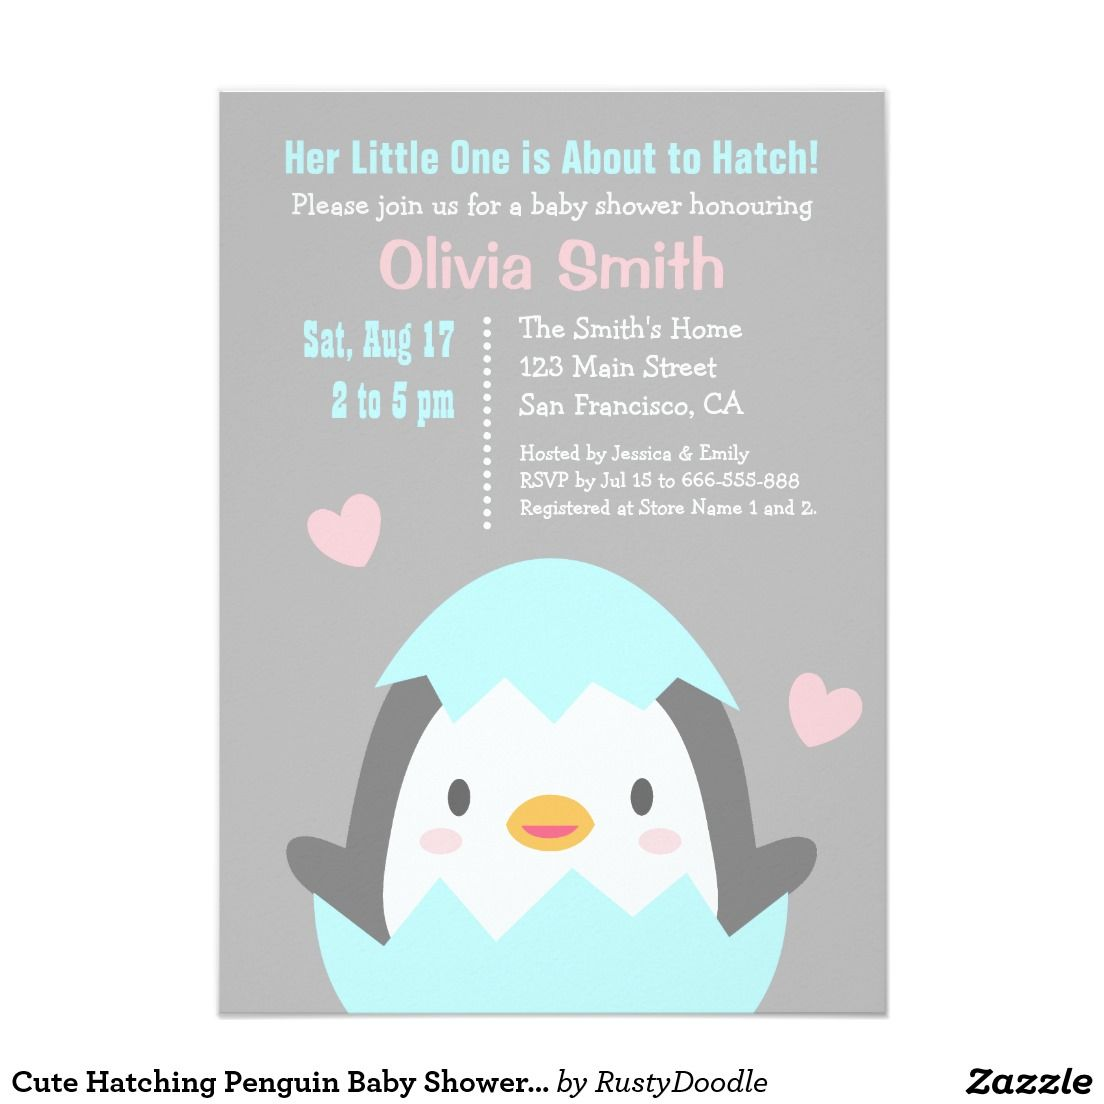 Cute Hatching Penguin Baby Shower Invitations | Baby Shower ...